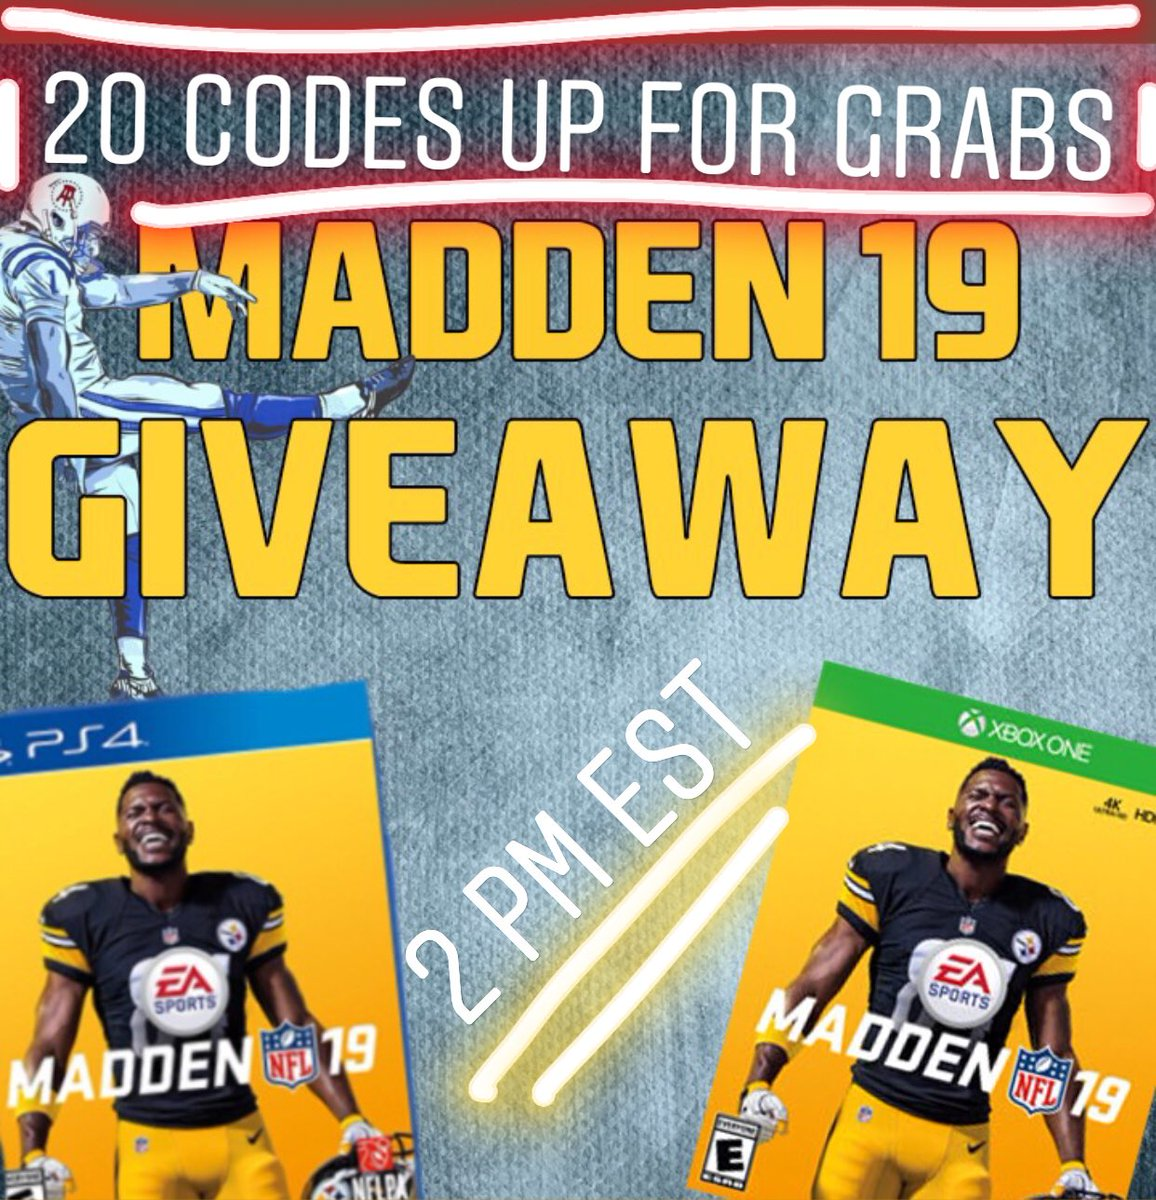 🗣 #Madden19 GIVEAWAY.. Be a friend, tell a friend